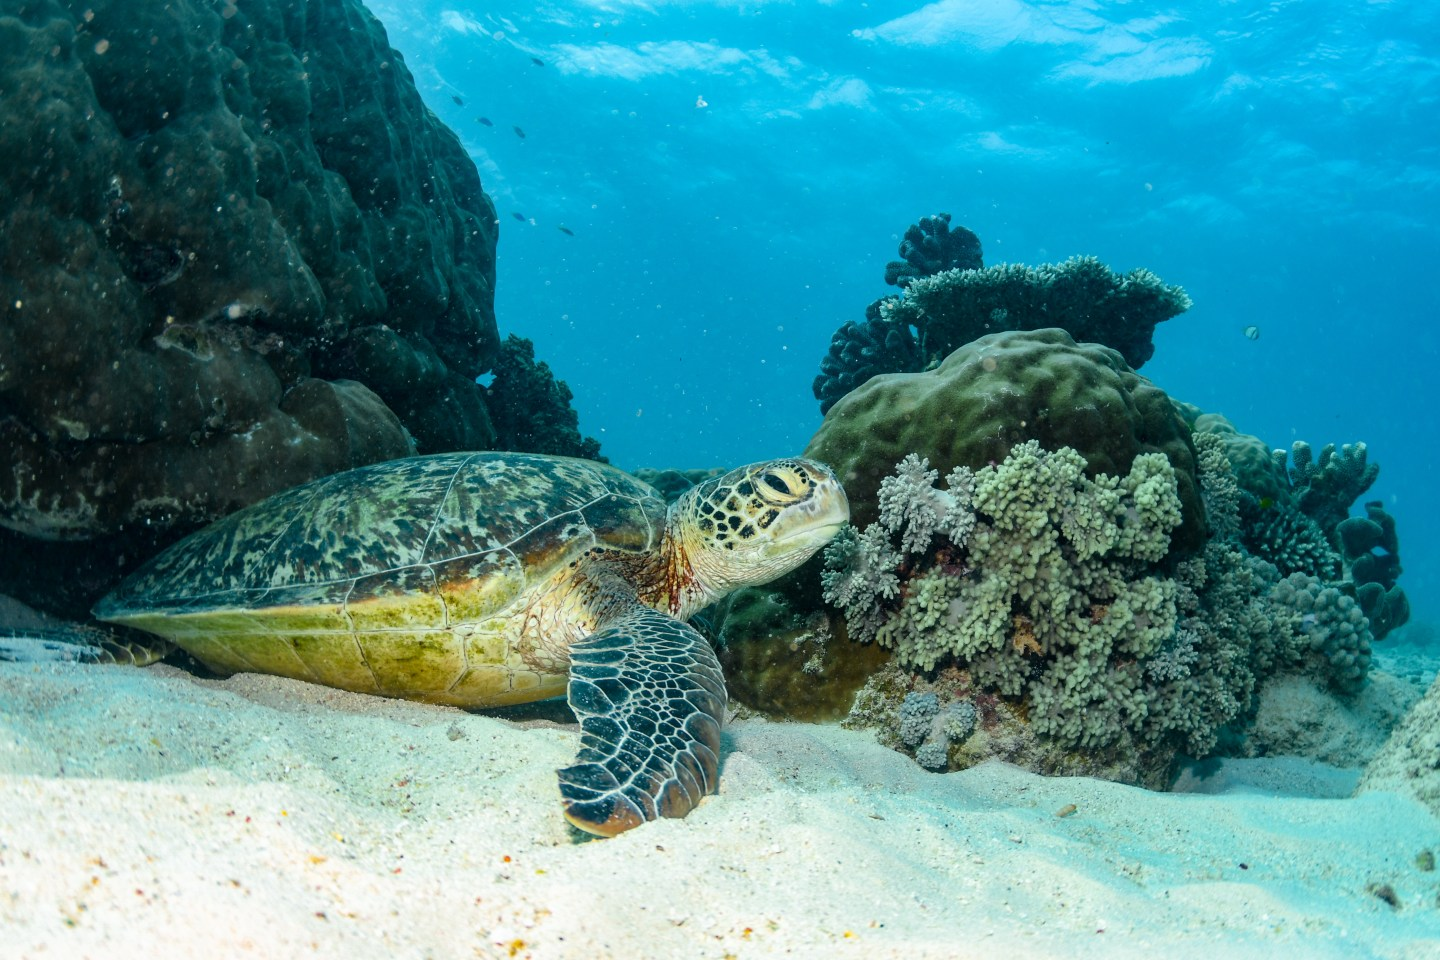 Turtle at Great Barrier Reef